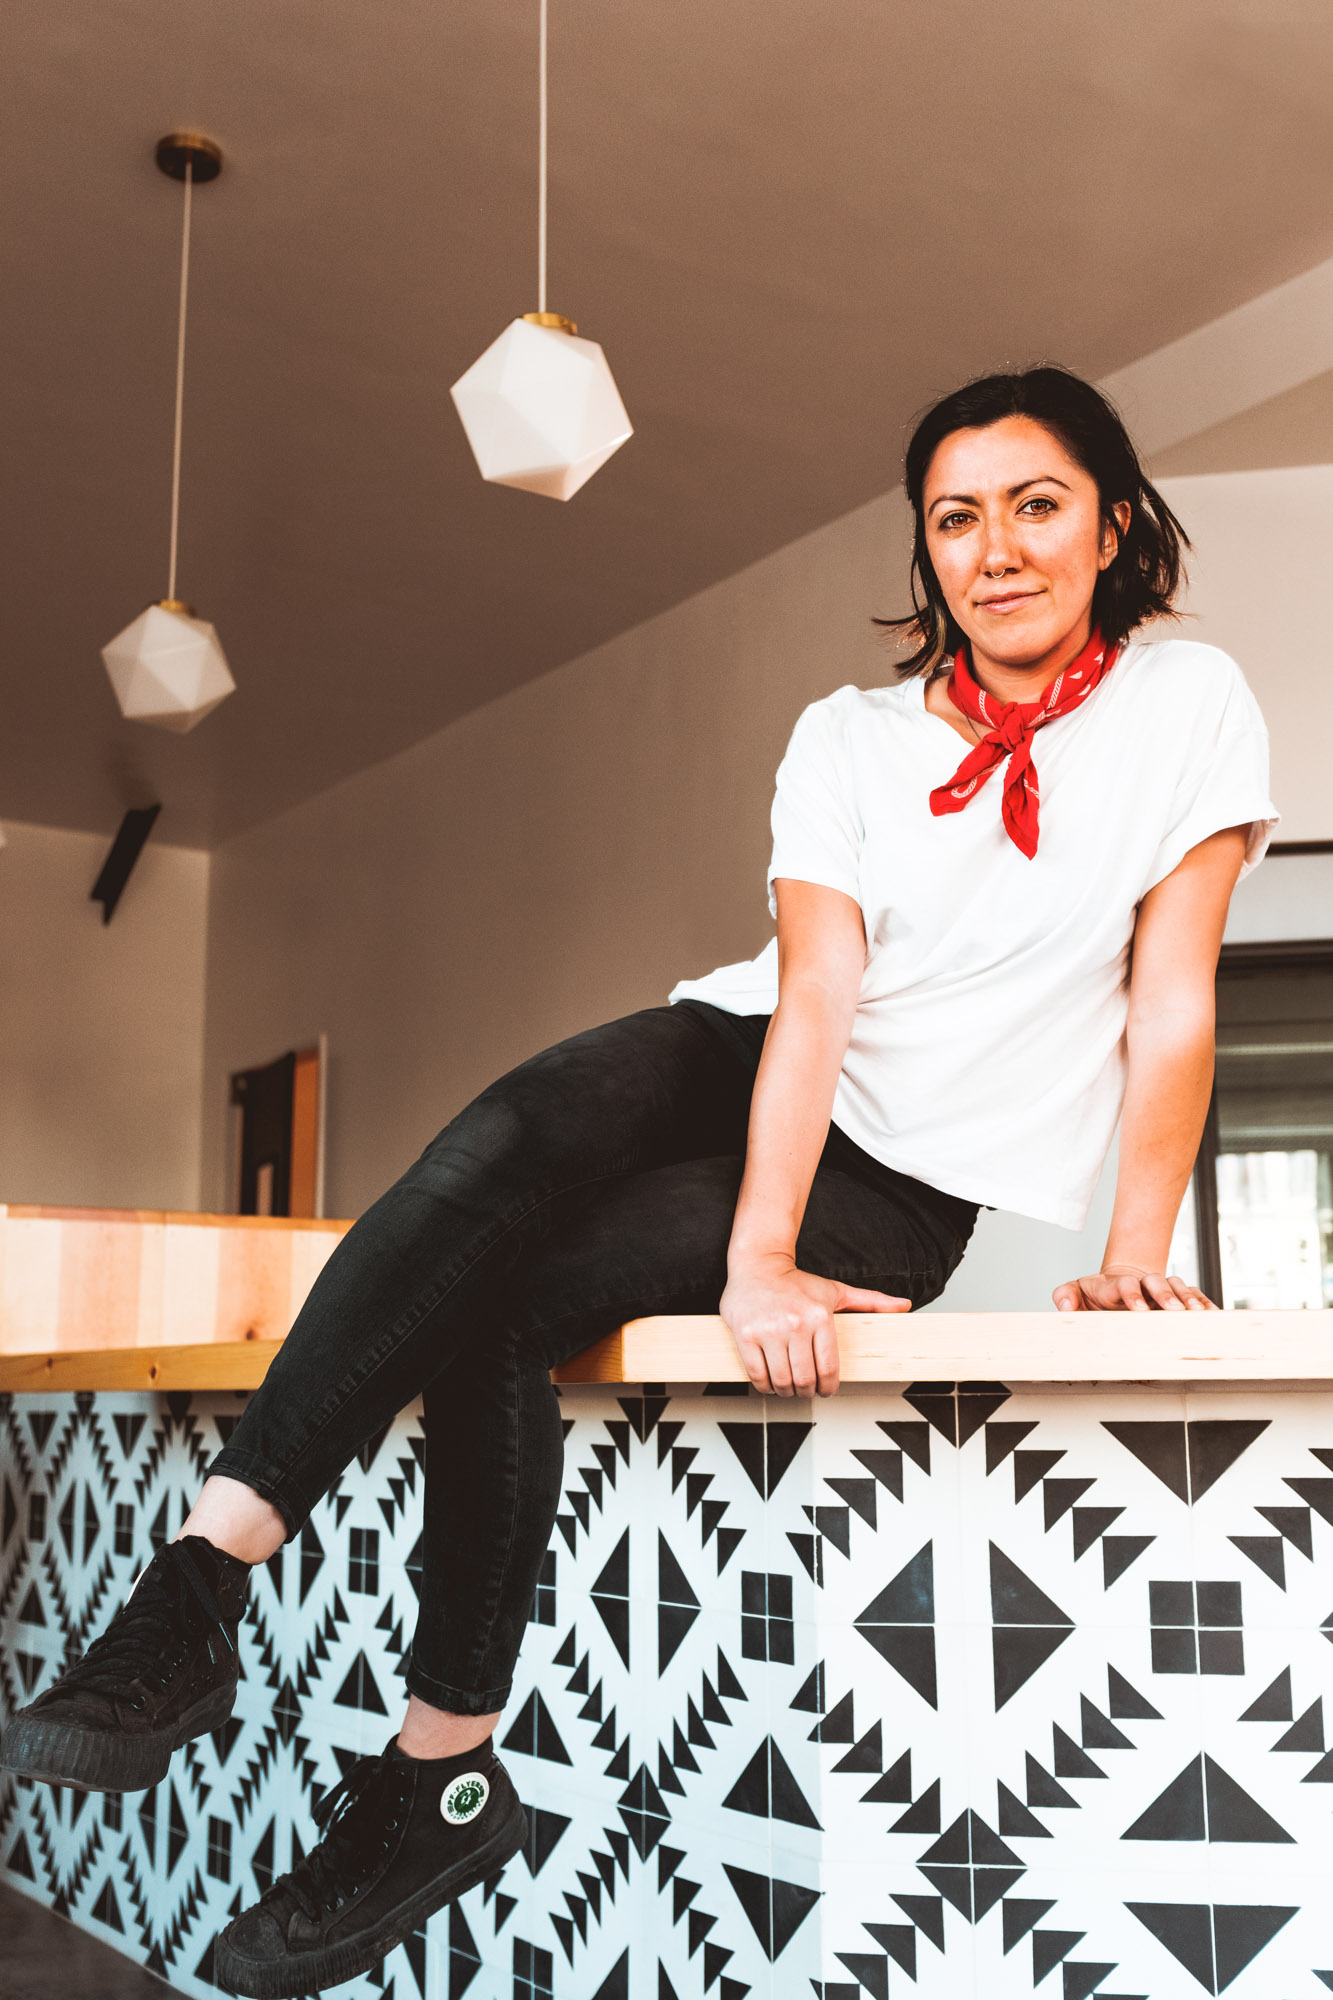 Angela-Almaguer-Salud-Sitting-Counter